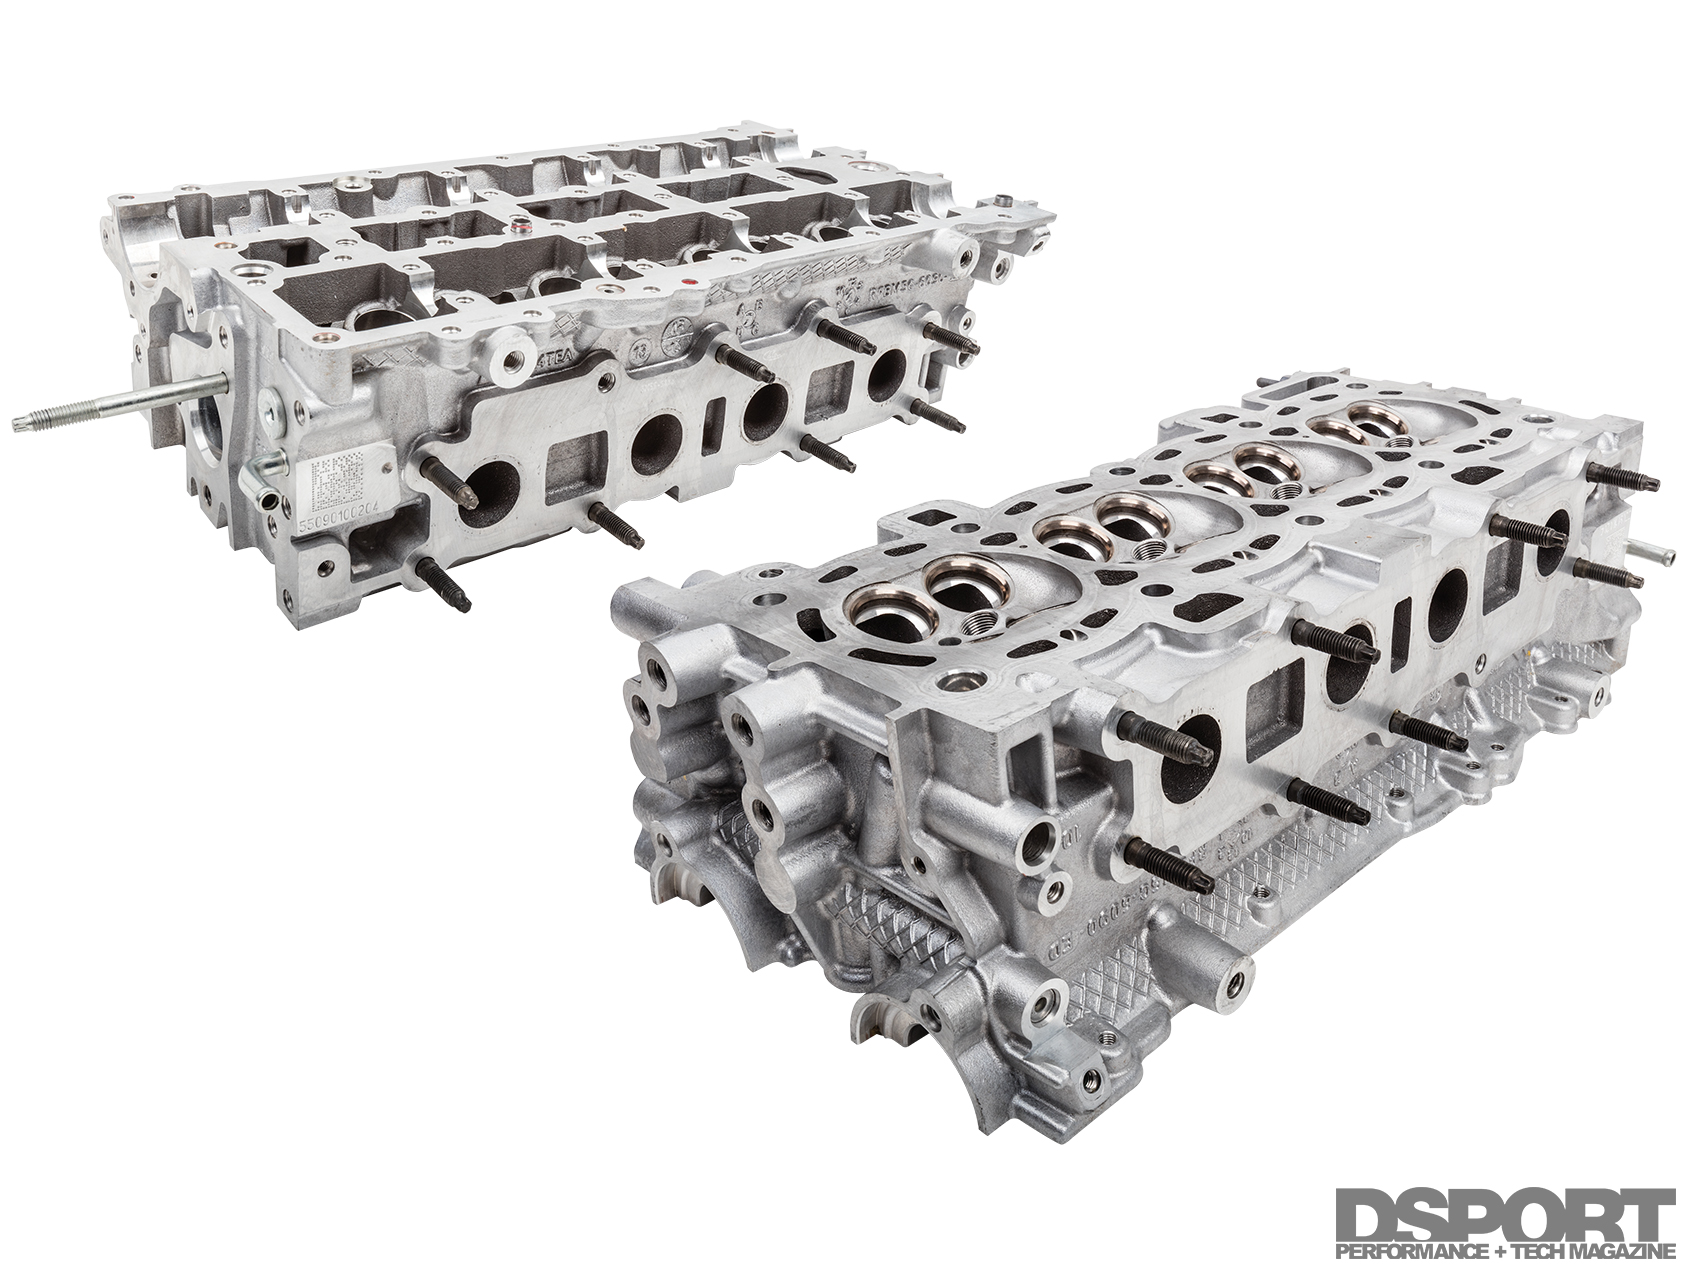 Ford Ecoboost 16l Analysis Turbo Direct Injection Ccvtc Injected Engine Diagram Cylinder Head For The